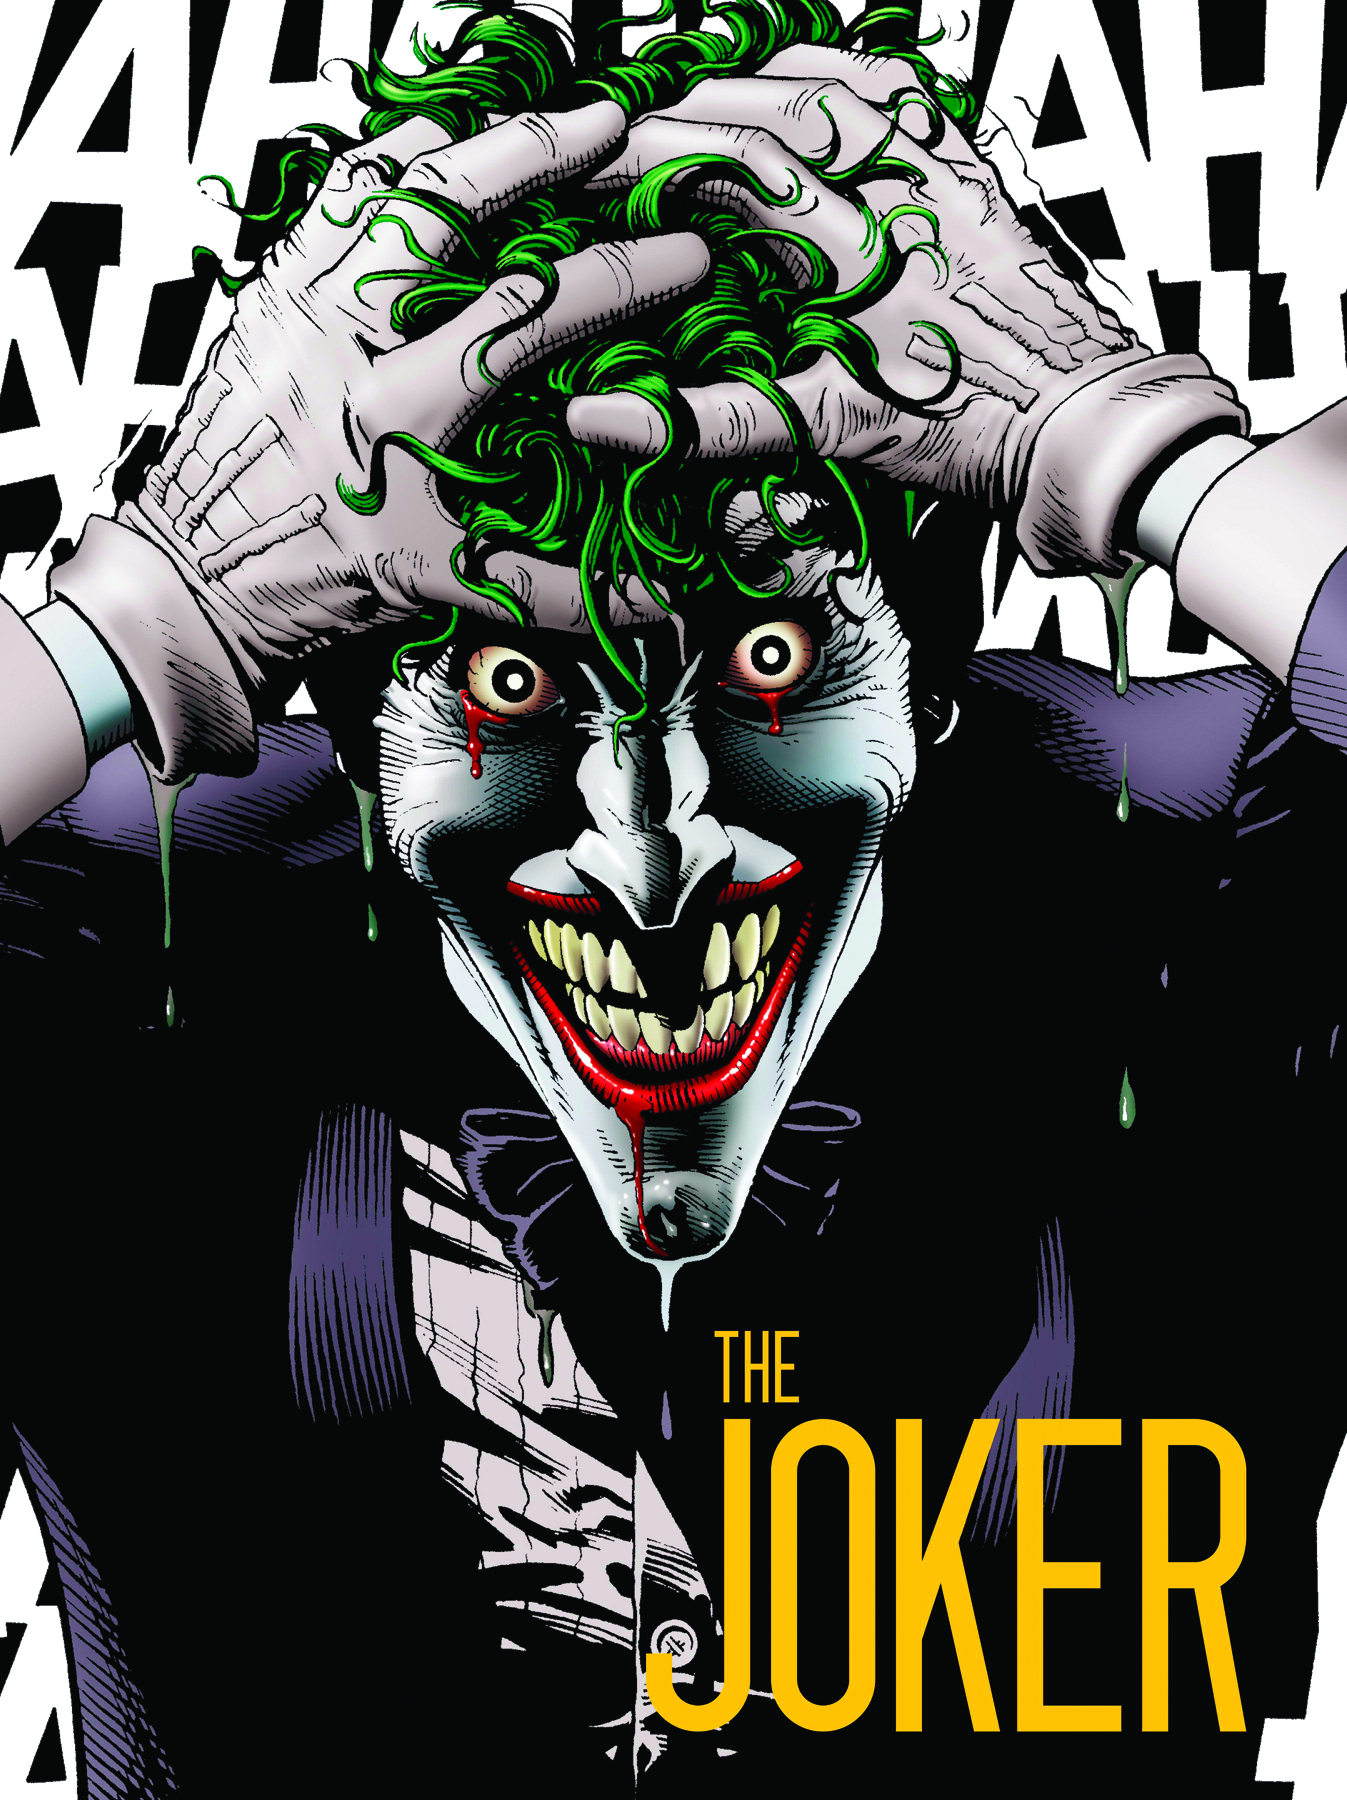 The Joker Comic...